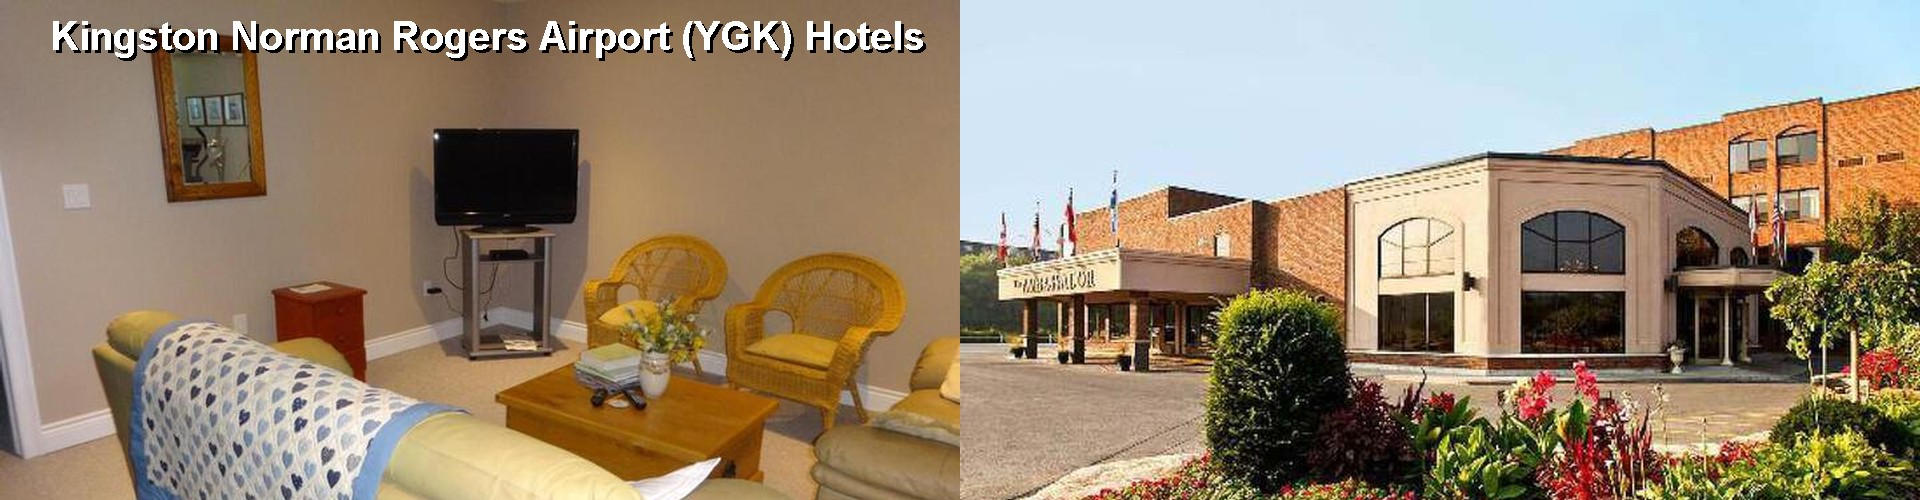 3 Best Hotels near Kingston Norman Rogers Airport (YGK)